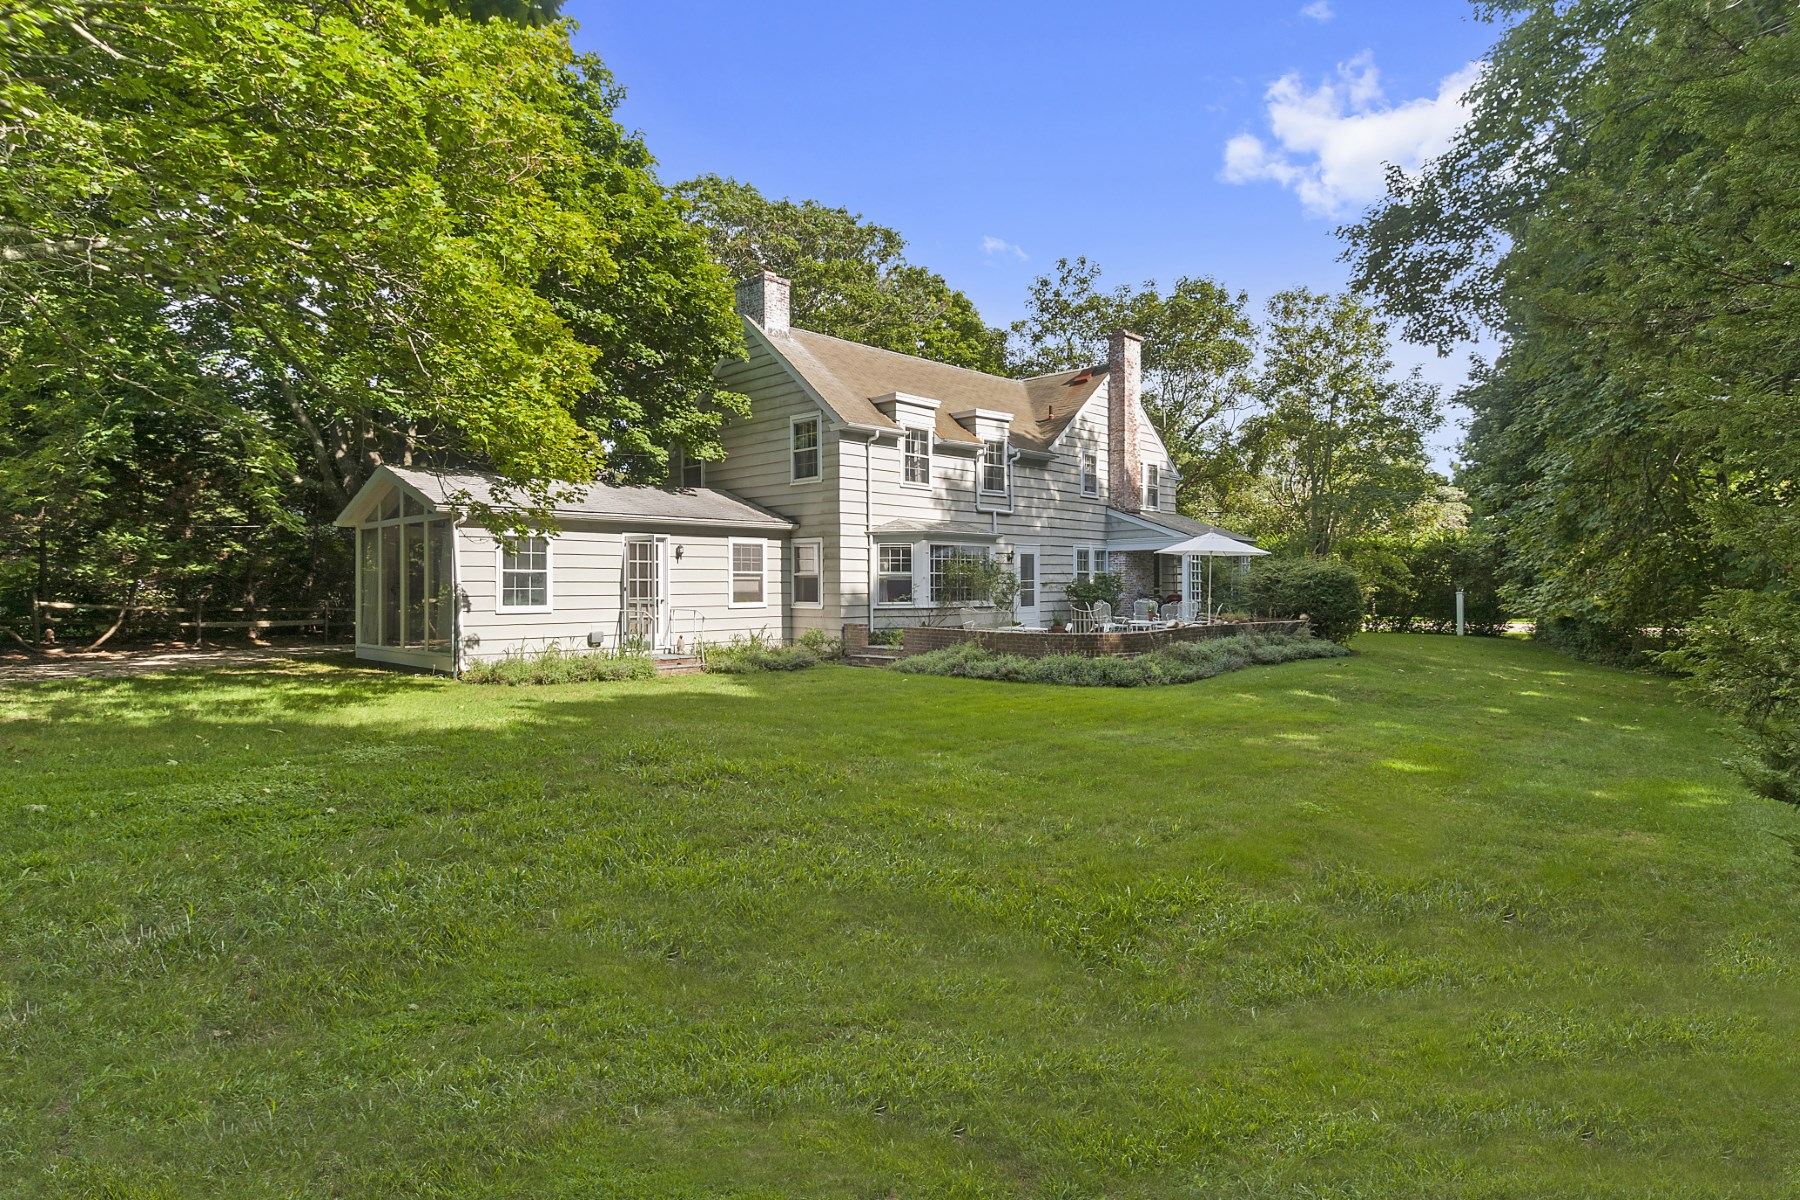 Maison unifamiliale pour l Vente à 1+/- Acres, Bridgehampton South Bridgehampton, New York, 11932 États-Unis